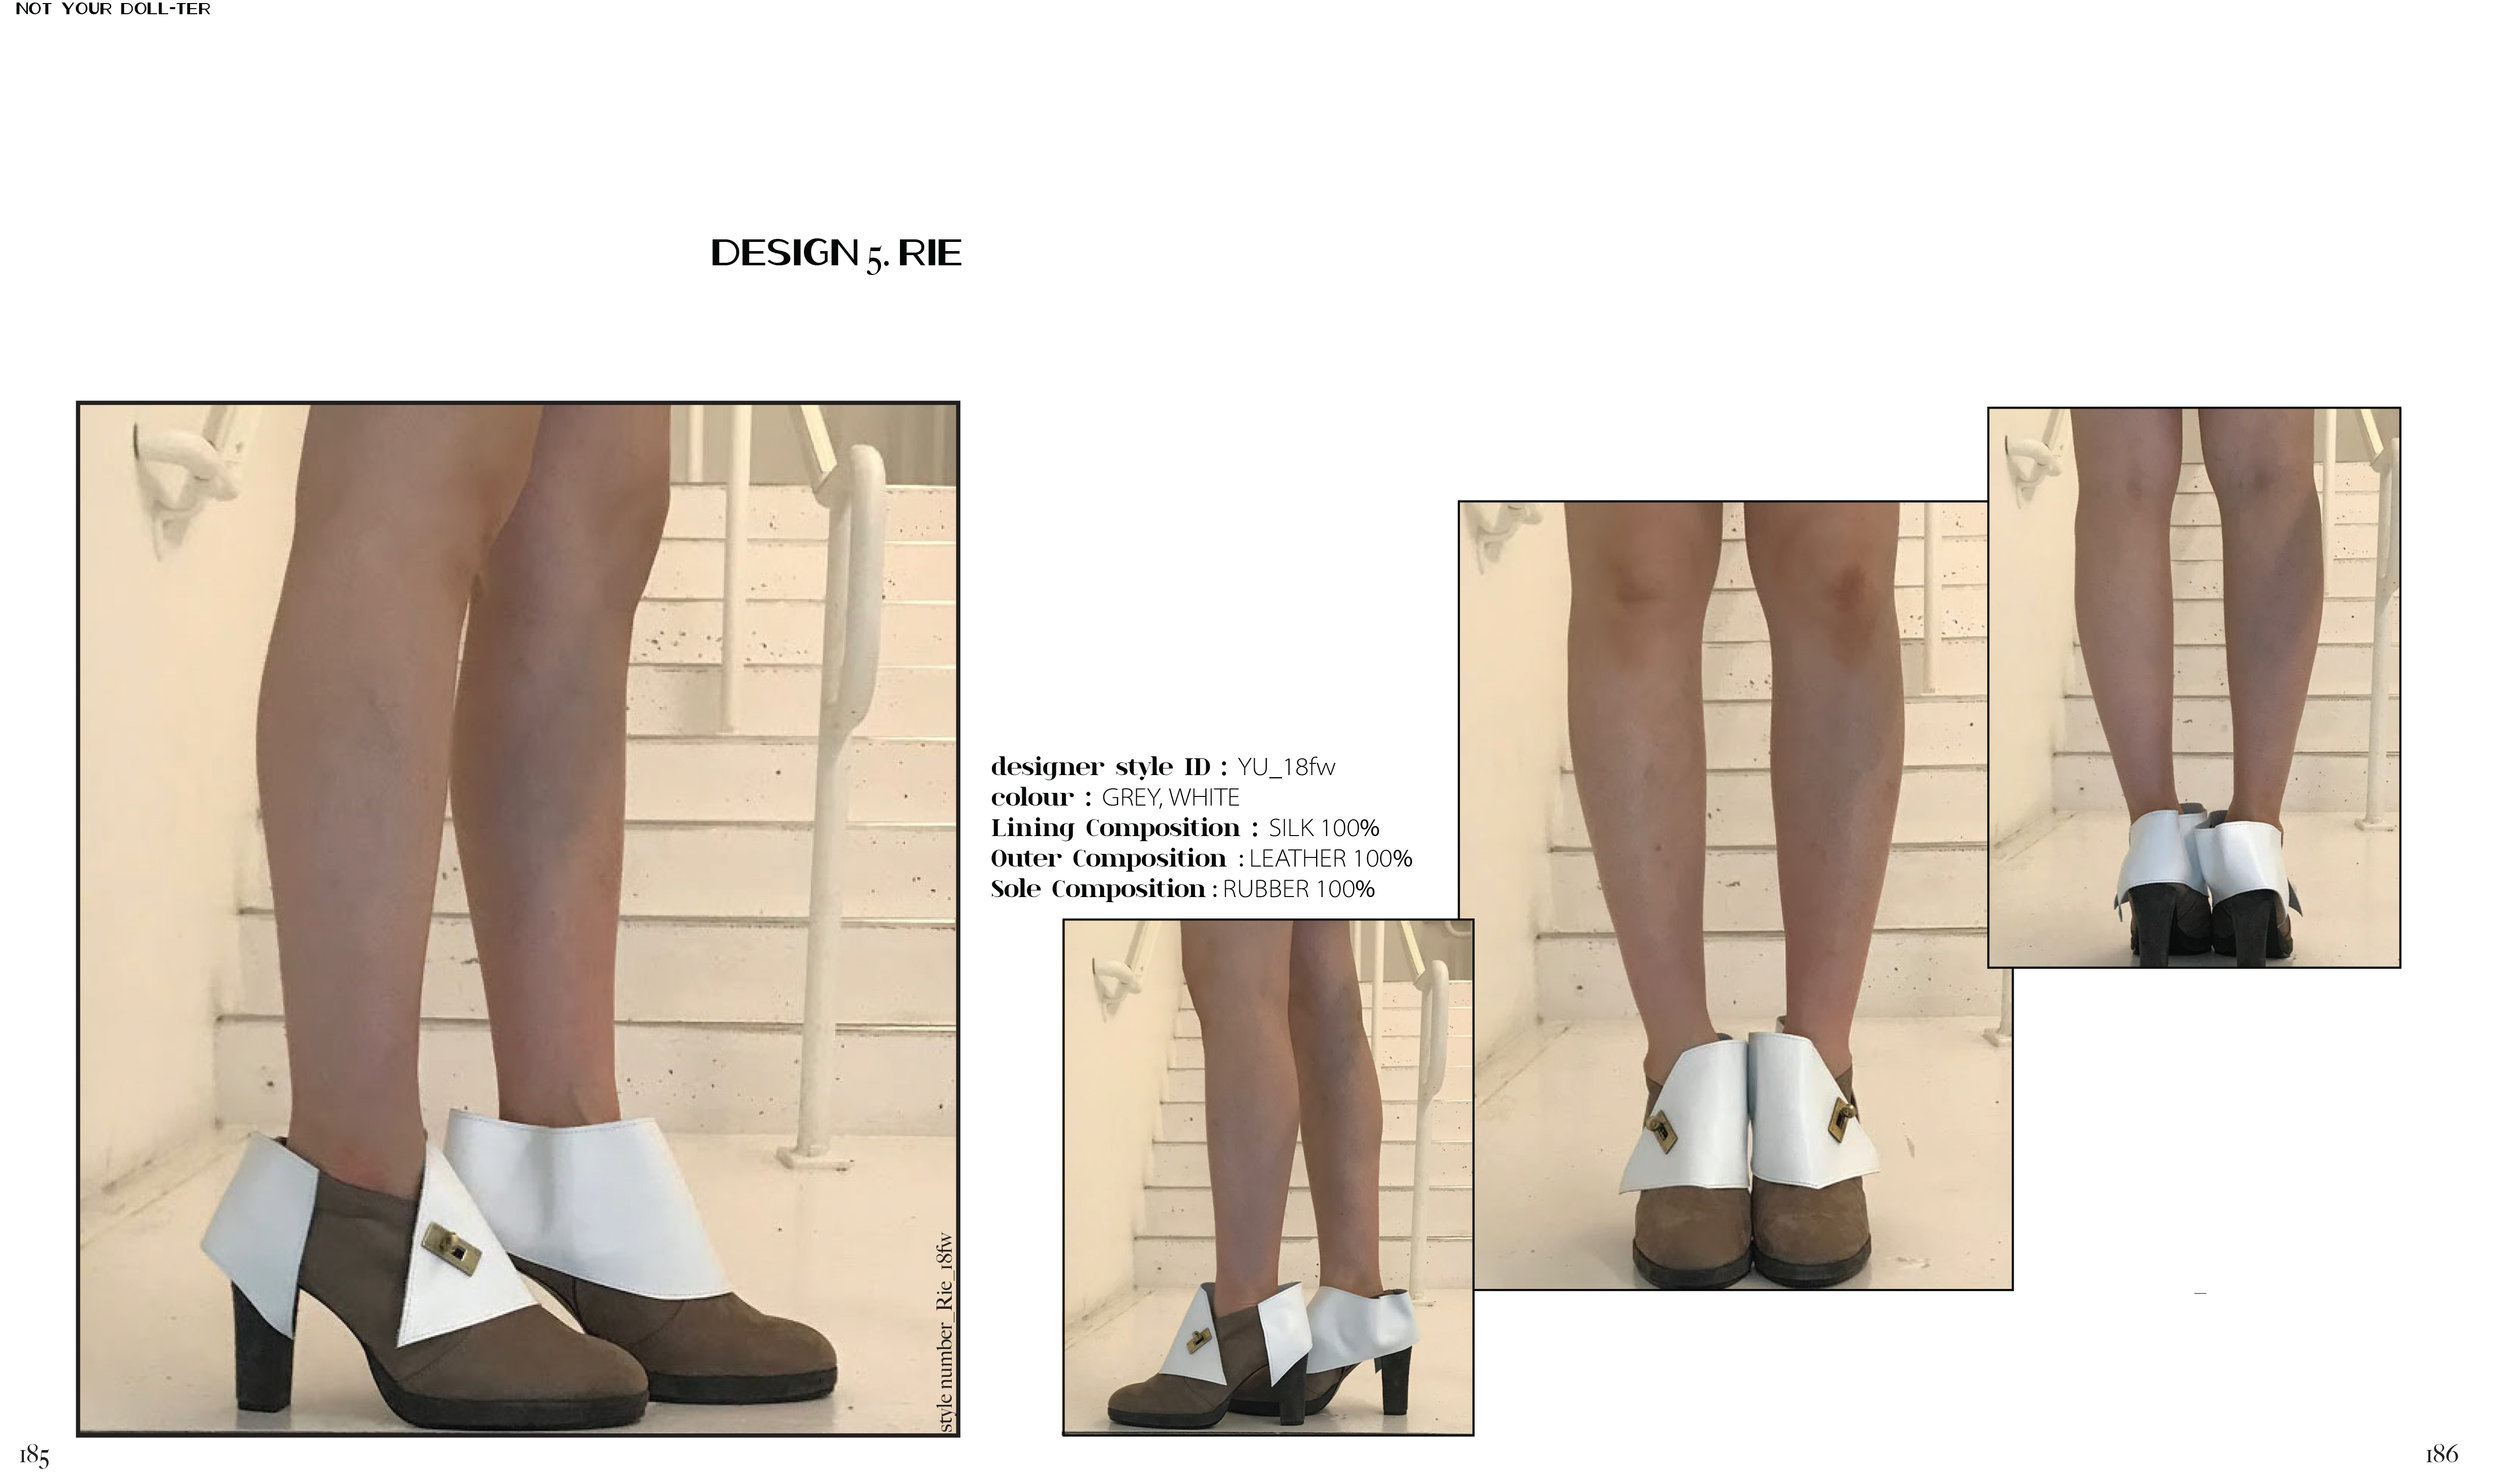 185_186_SP_PG_shoes_portfolio_pg_23.jpg